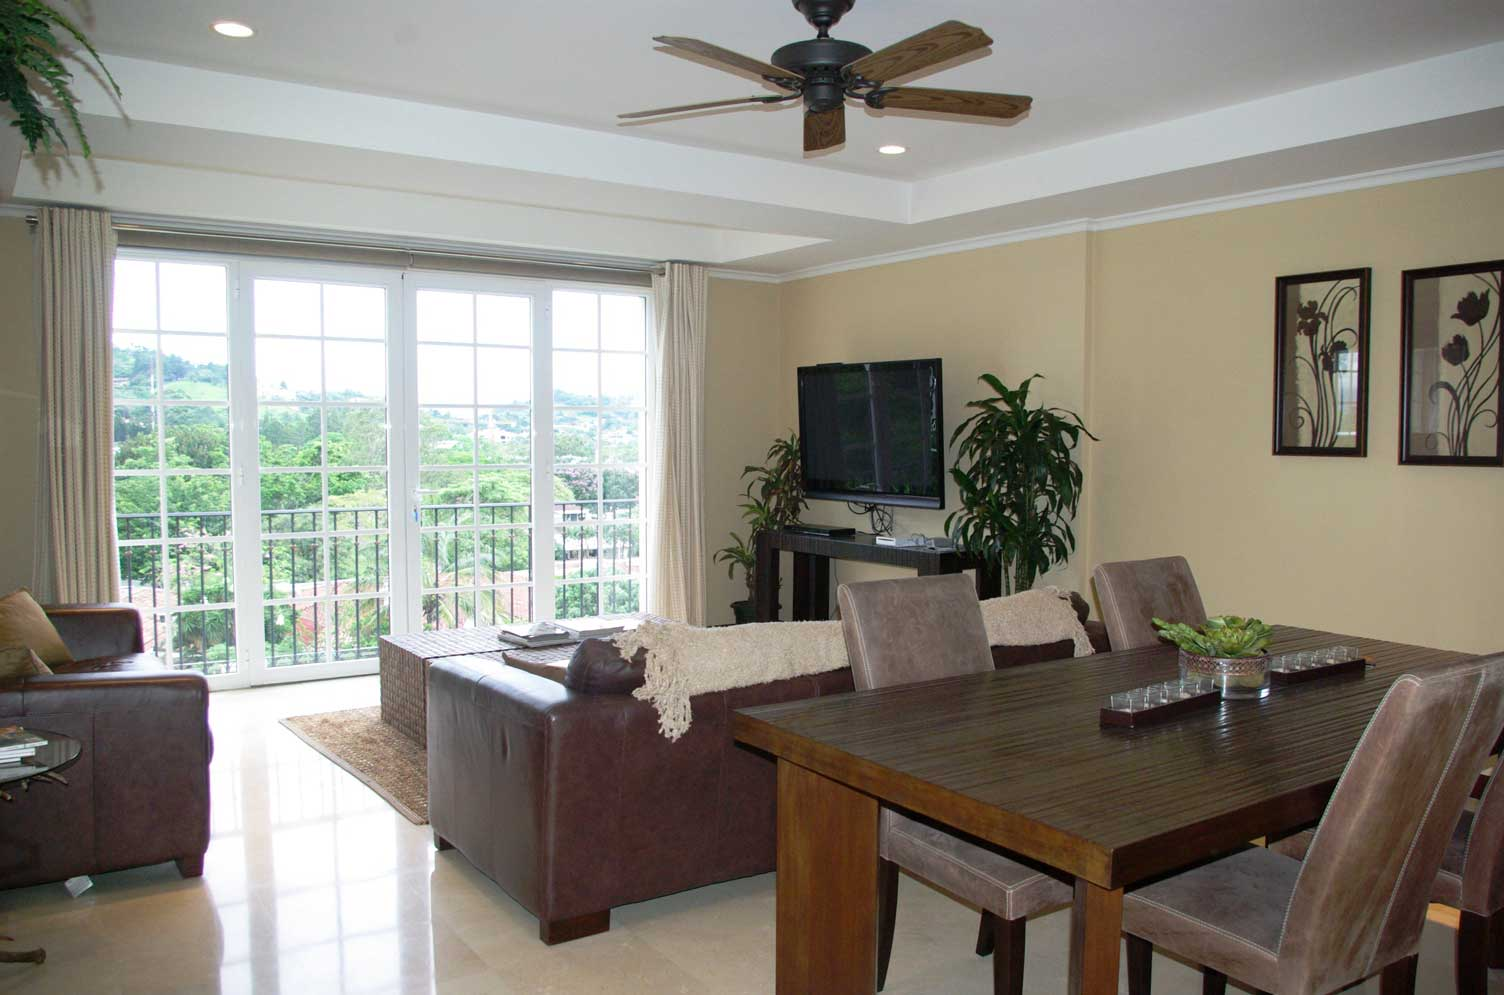 One Stop Costa Rica For Rent 2 400 5th Floor 3 Bedroom Fully Furnished Luxury Apartment For Rent Or Sale At Cortijo Los Laureles In Escazu